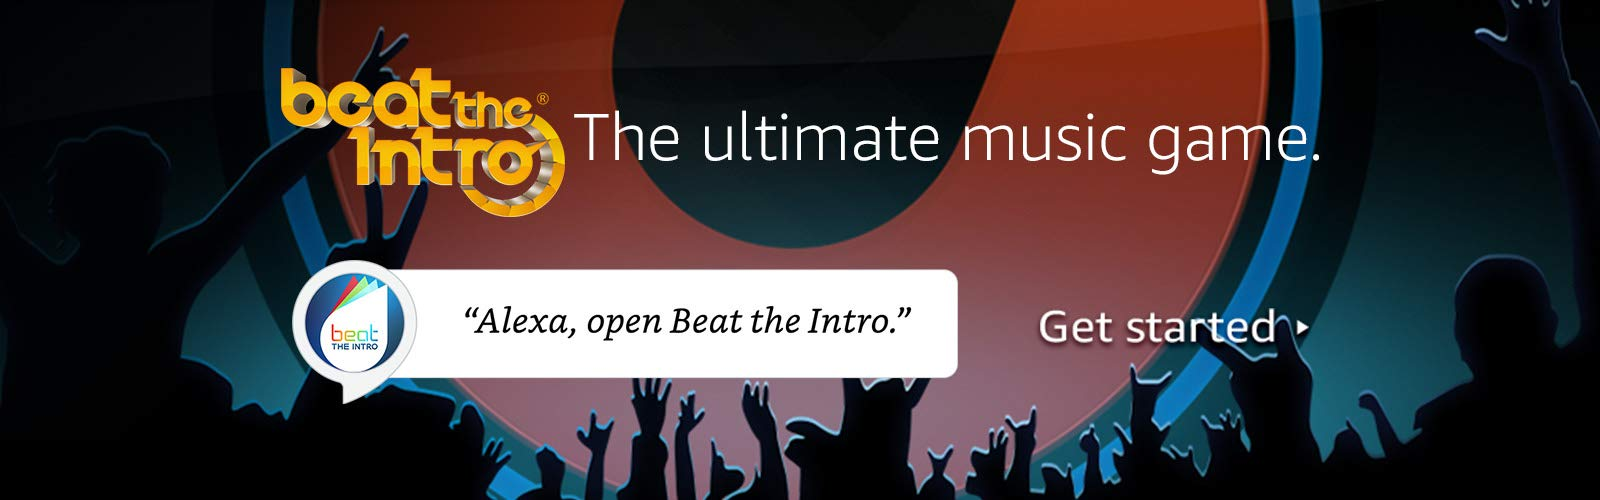 "The ultimate music game. ""Alexa, open Beat the Intro."""